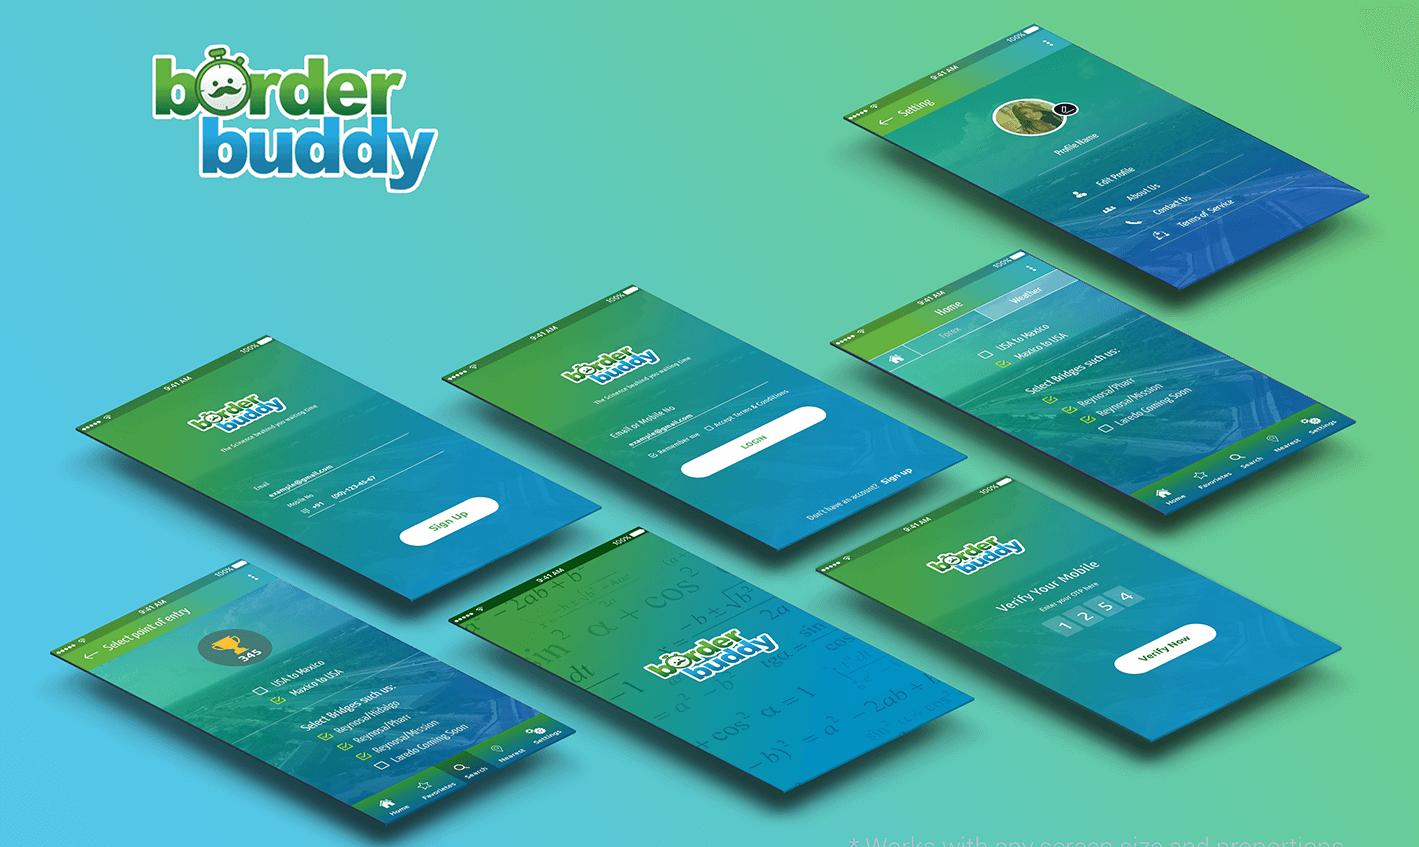 CrossingBuddy-Mockup